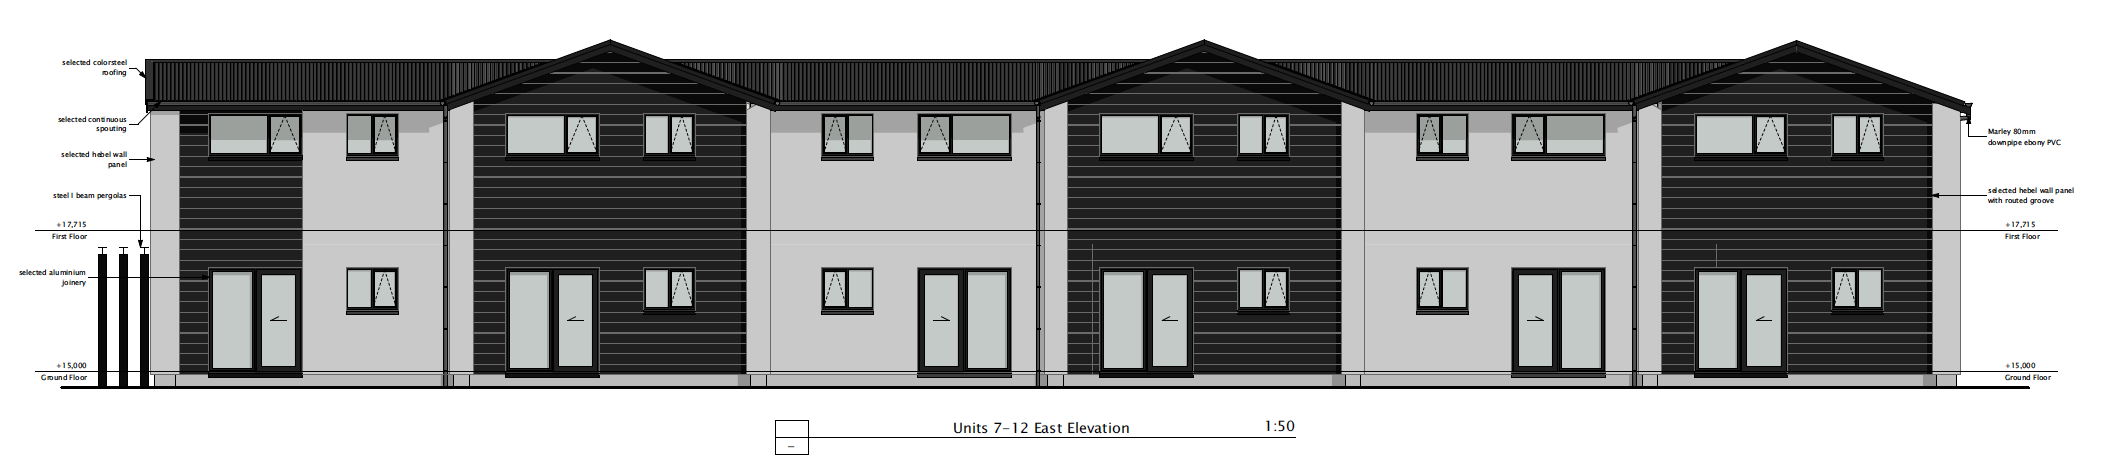 221 ARMAGH ST, CHRISTCHURCH, TOWNHOUSES